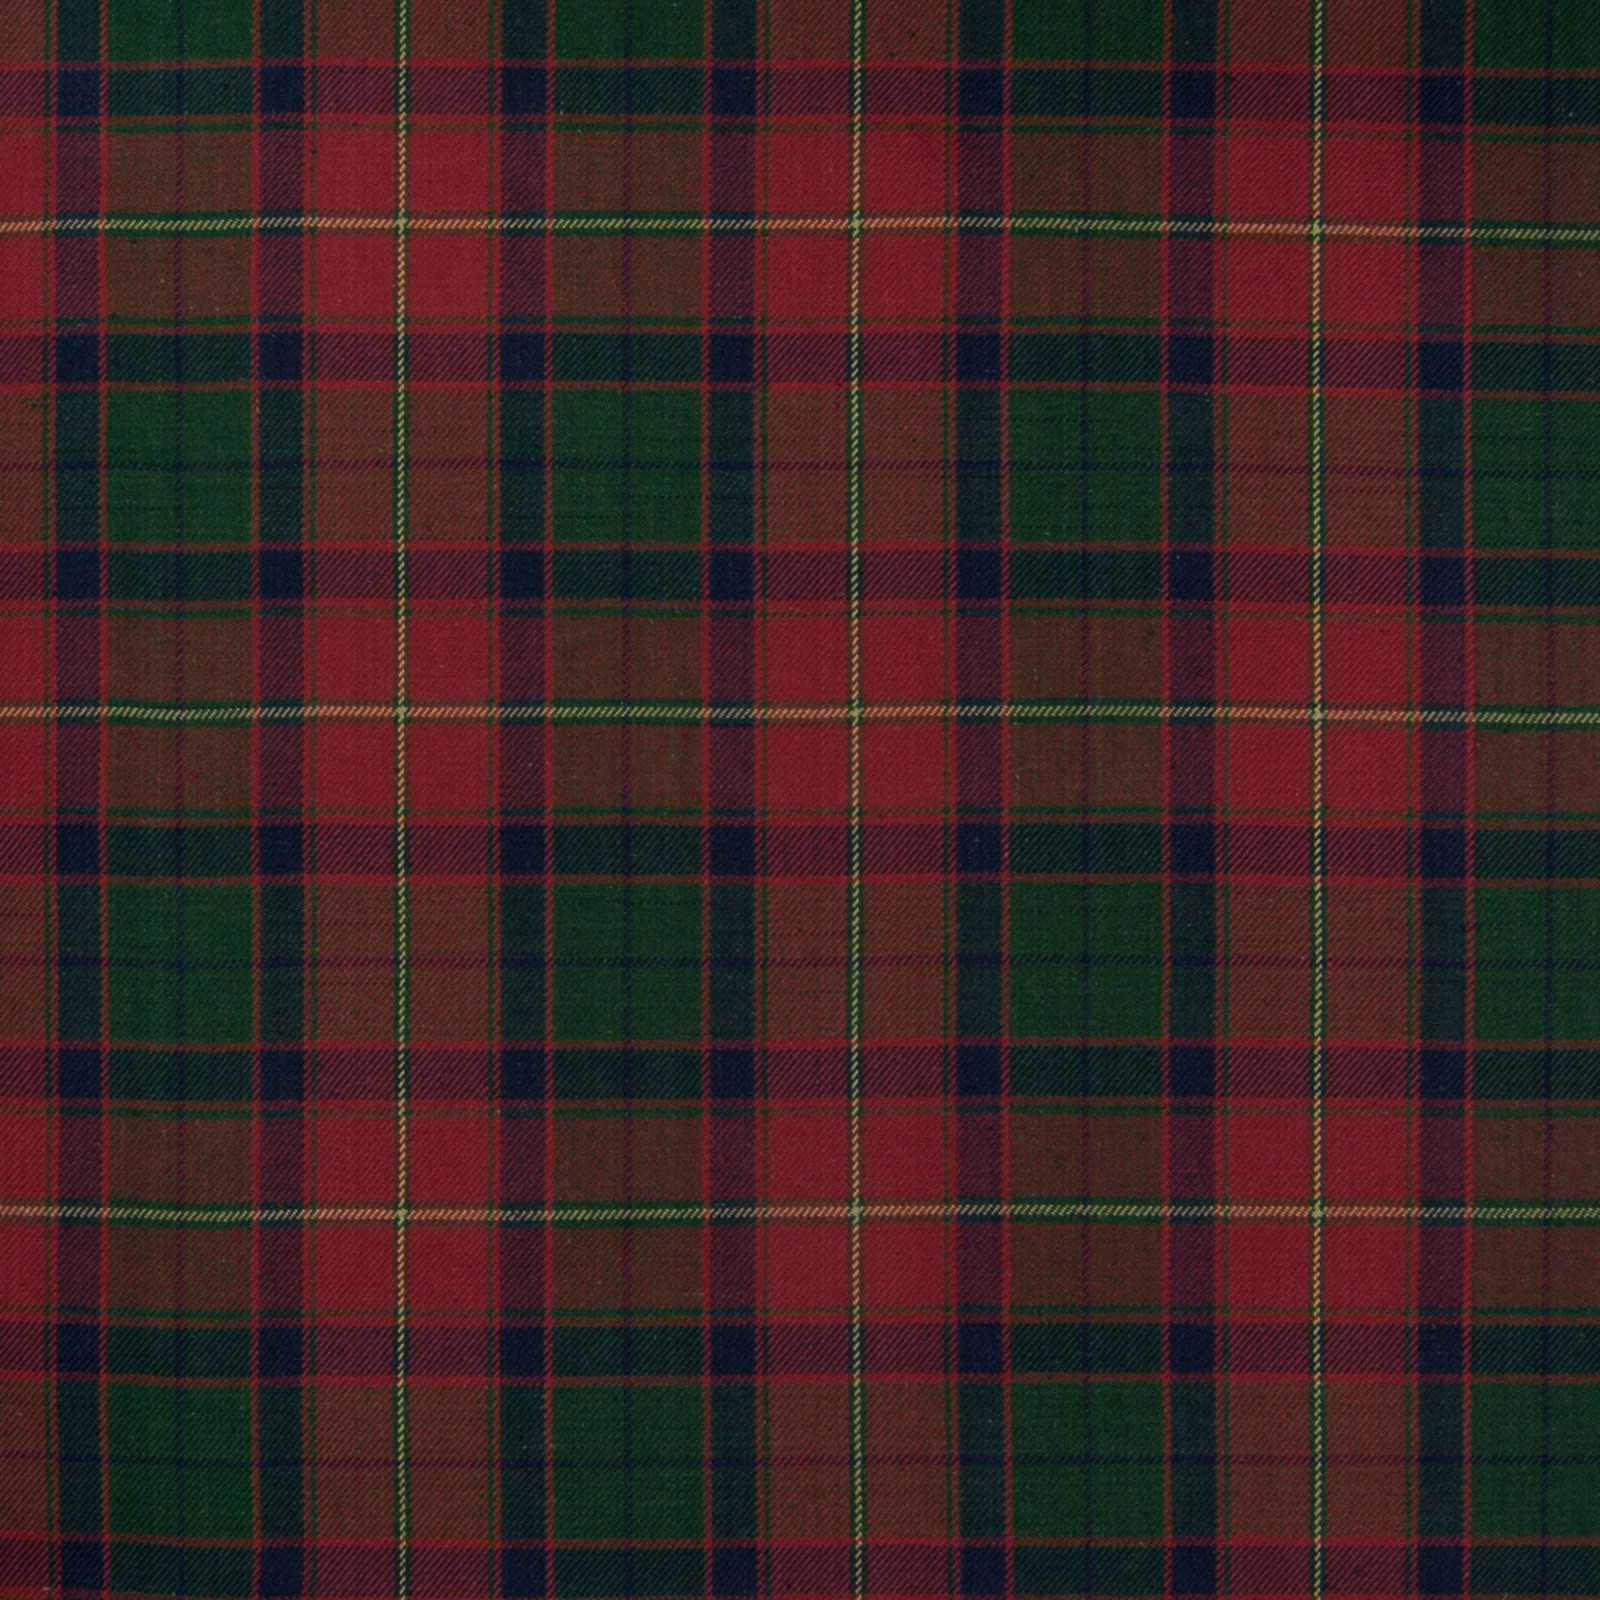 Chianti Red Plaid Woven Upholstery Fabric